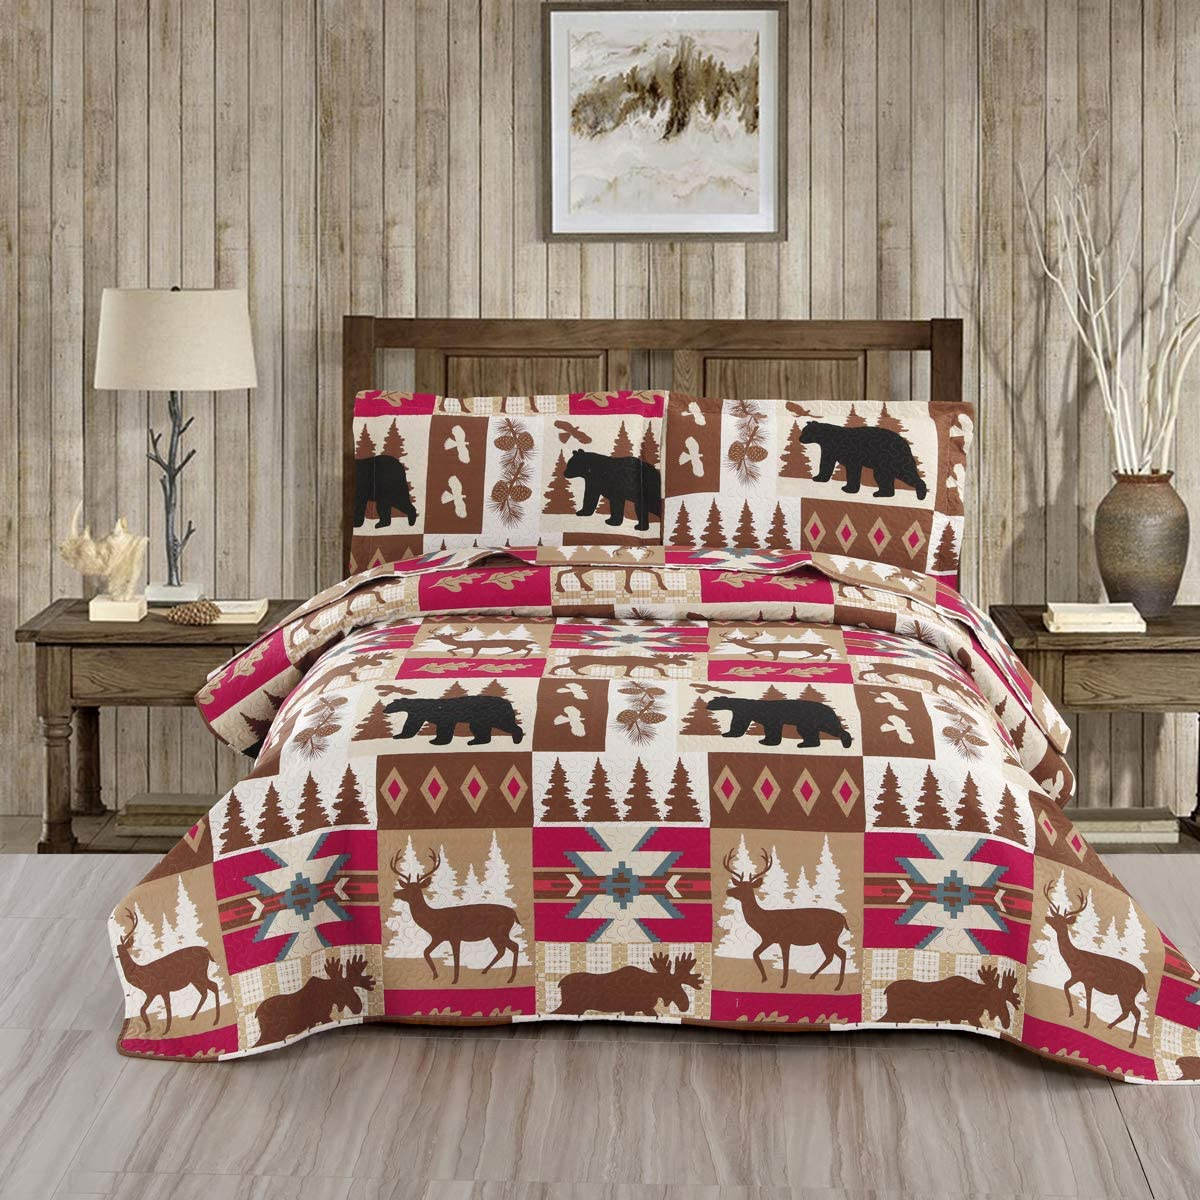 Lodge Quilt Set Bedding Lightweight Cabin Quilts Set Twin Size,3Pcs Rustic Moose Bear Bedspreads Reversible Lodge Coverlet Sets Deer Tree Printed Quilt Pillow Shams